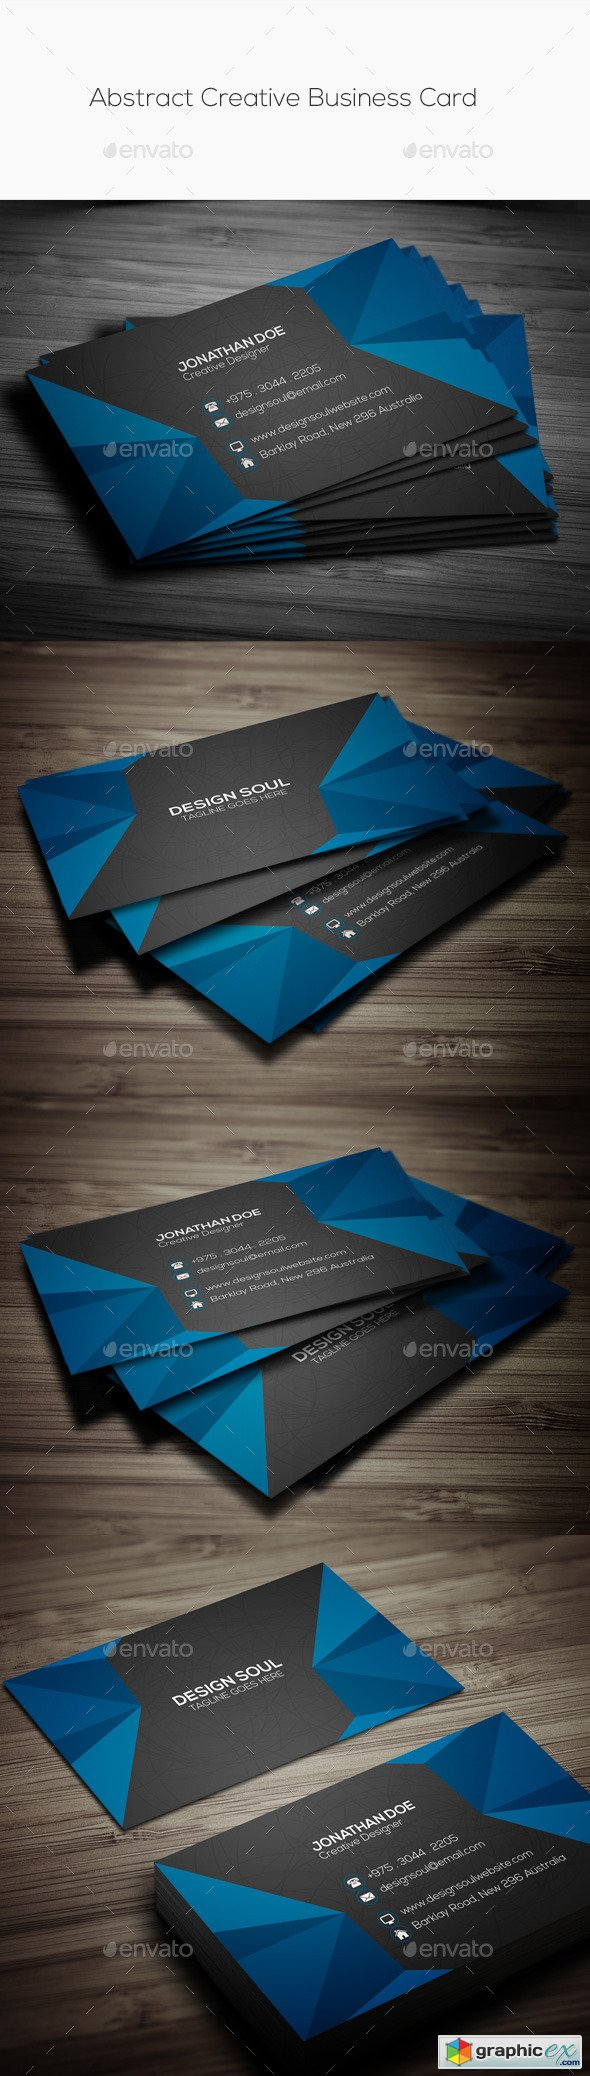 Abstract Creative Business Card 11252965